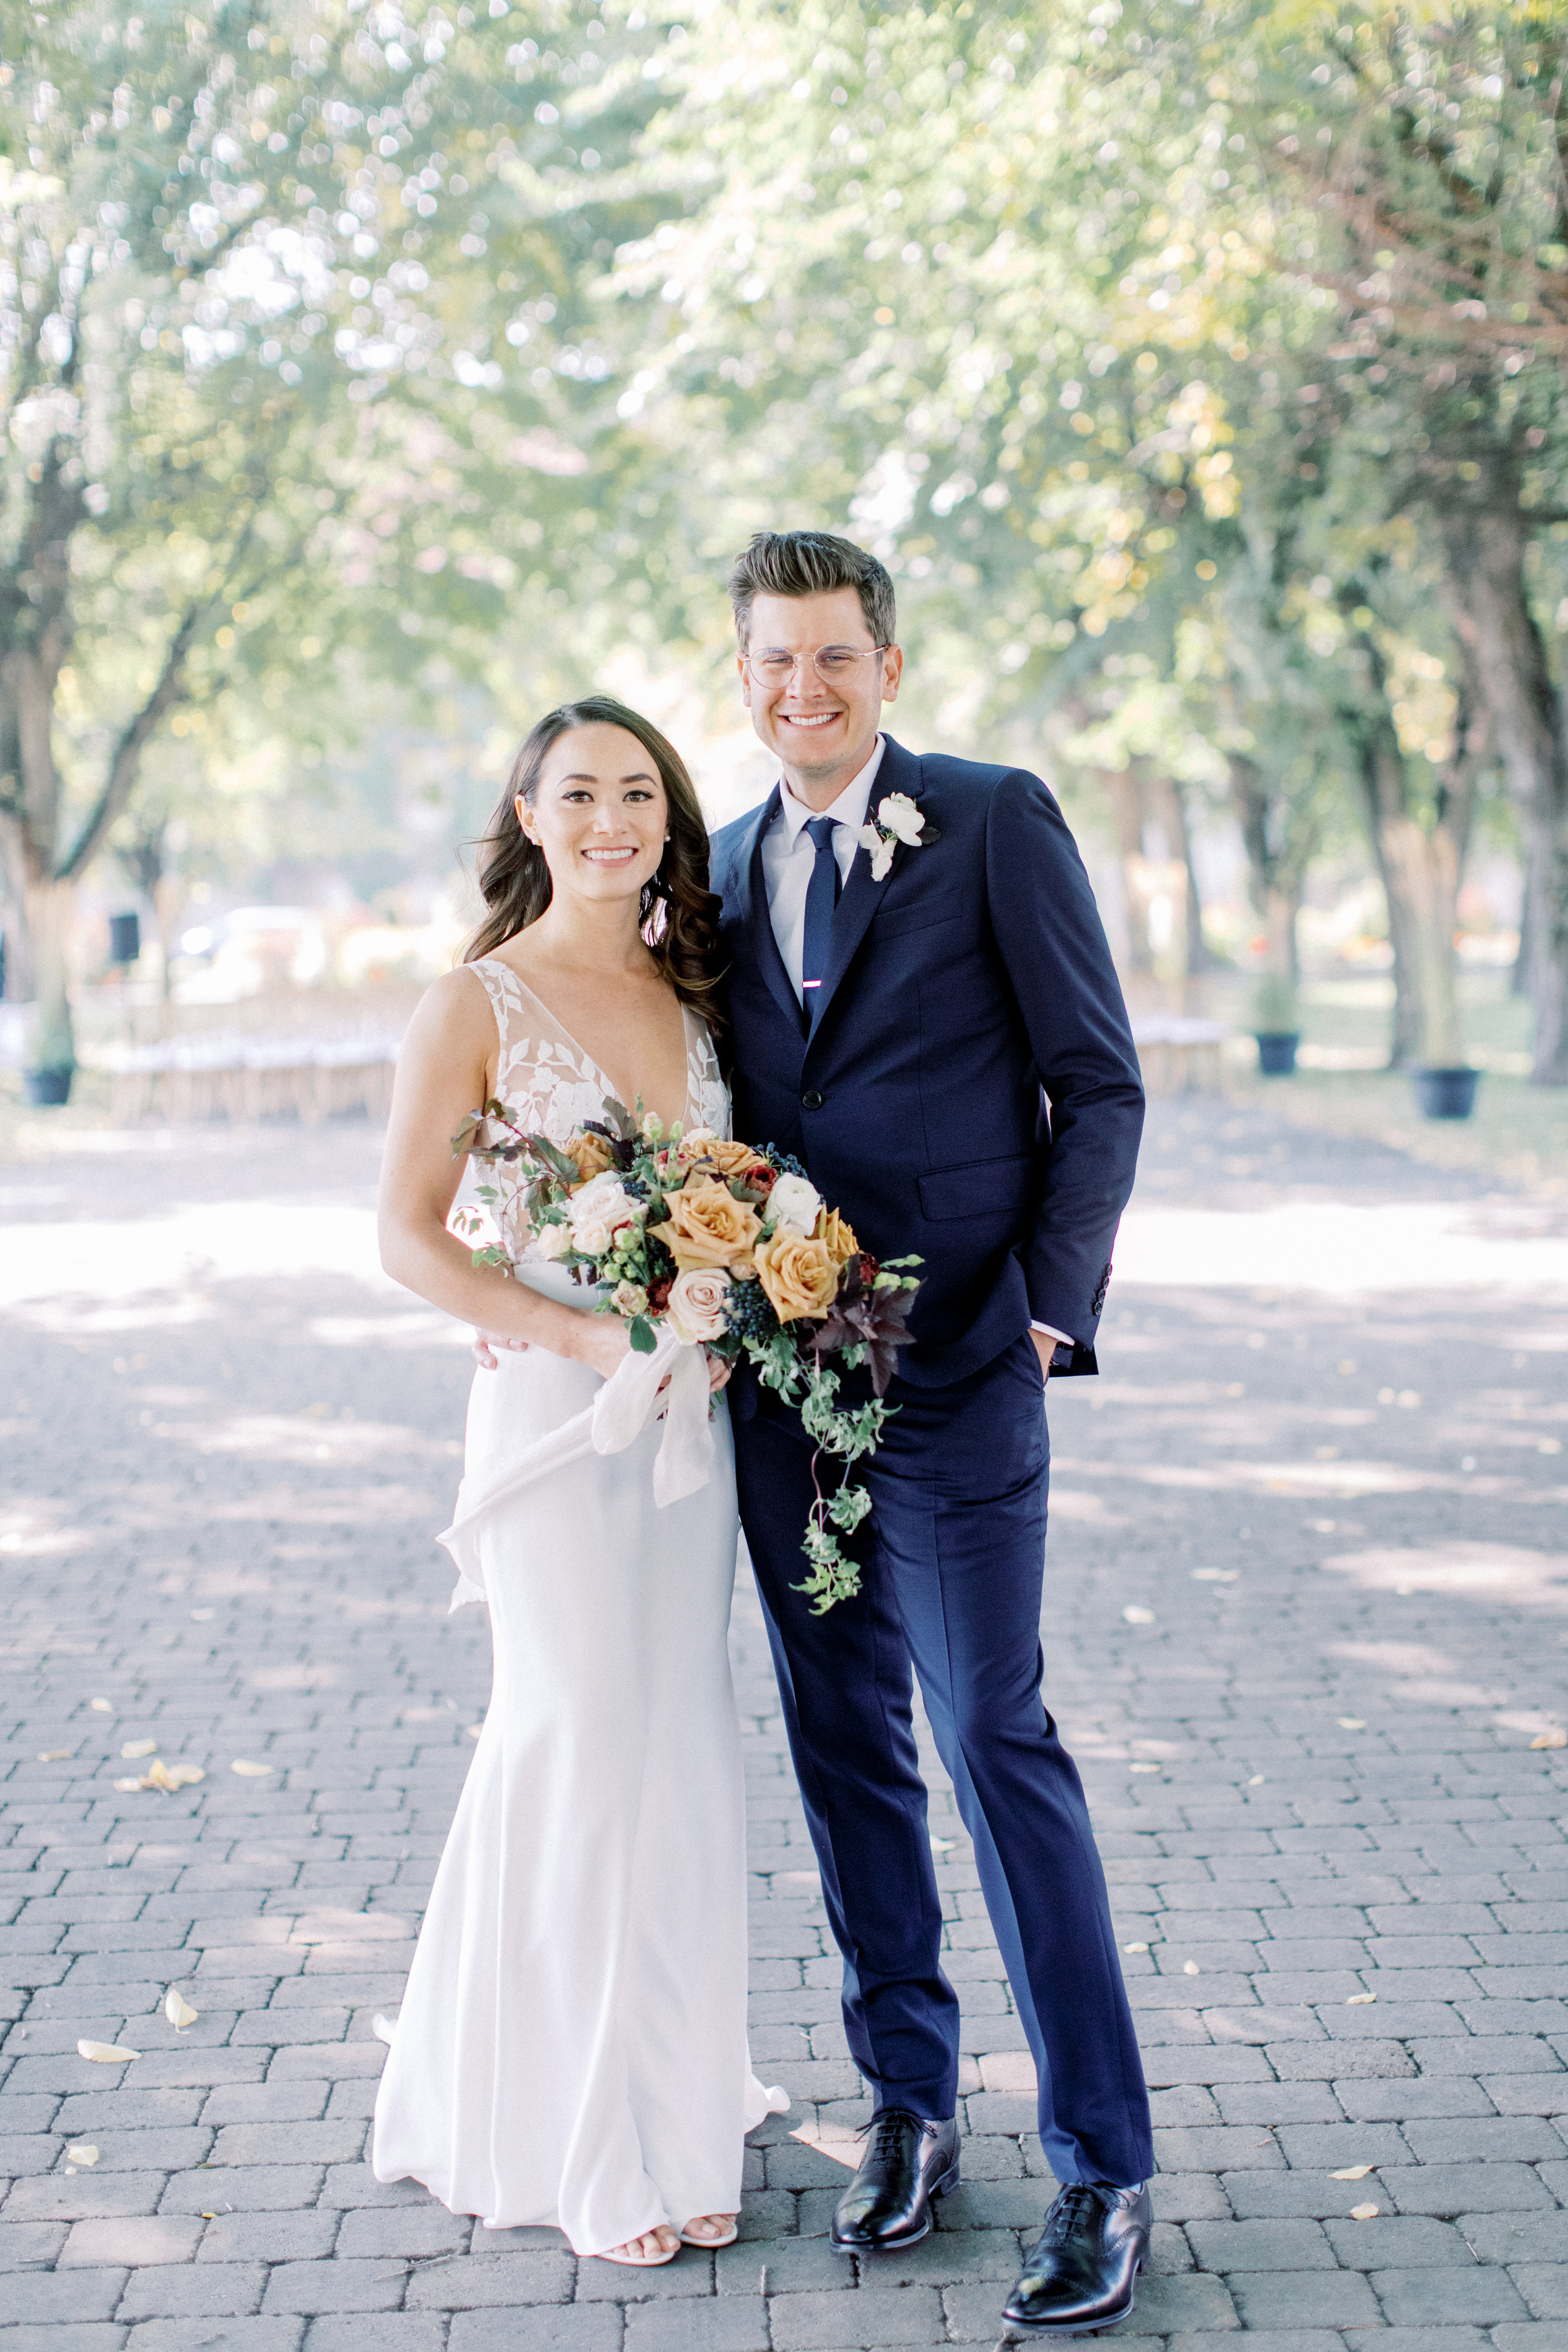 8 Tips for Choosing Your Wedding Photographer - Tips from the Pros - Heidrich Photography on The Bronte Bride Blog